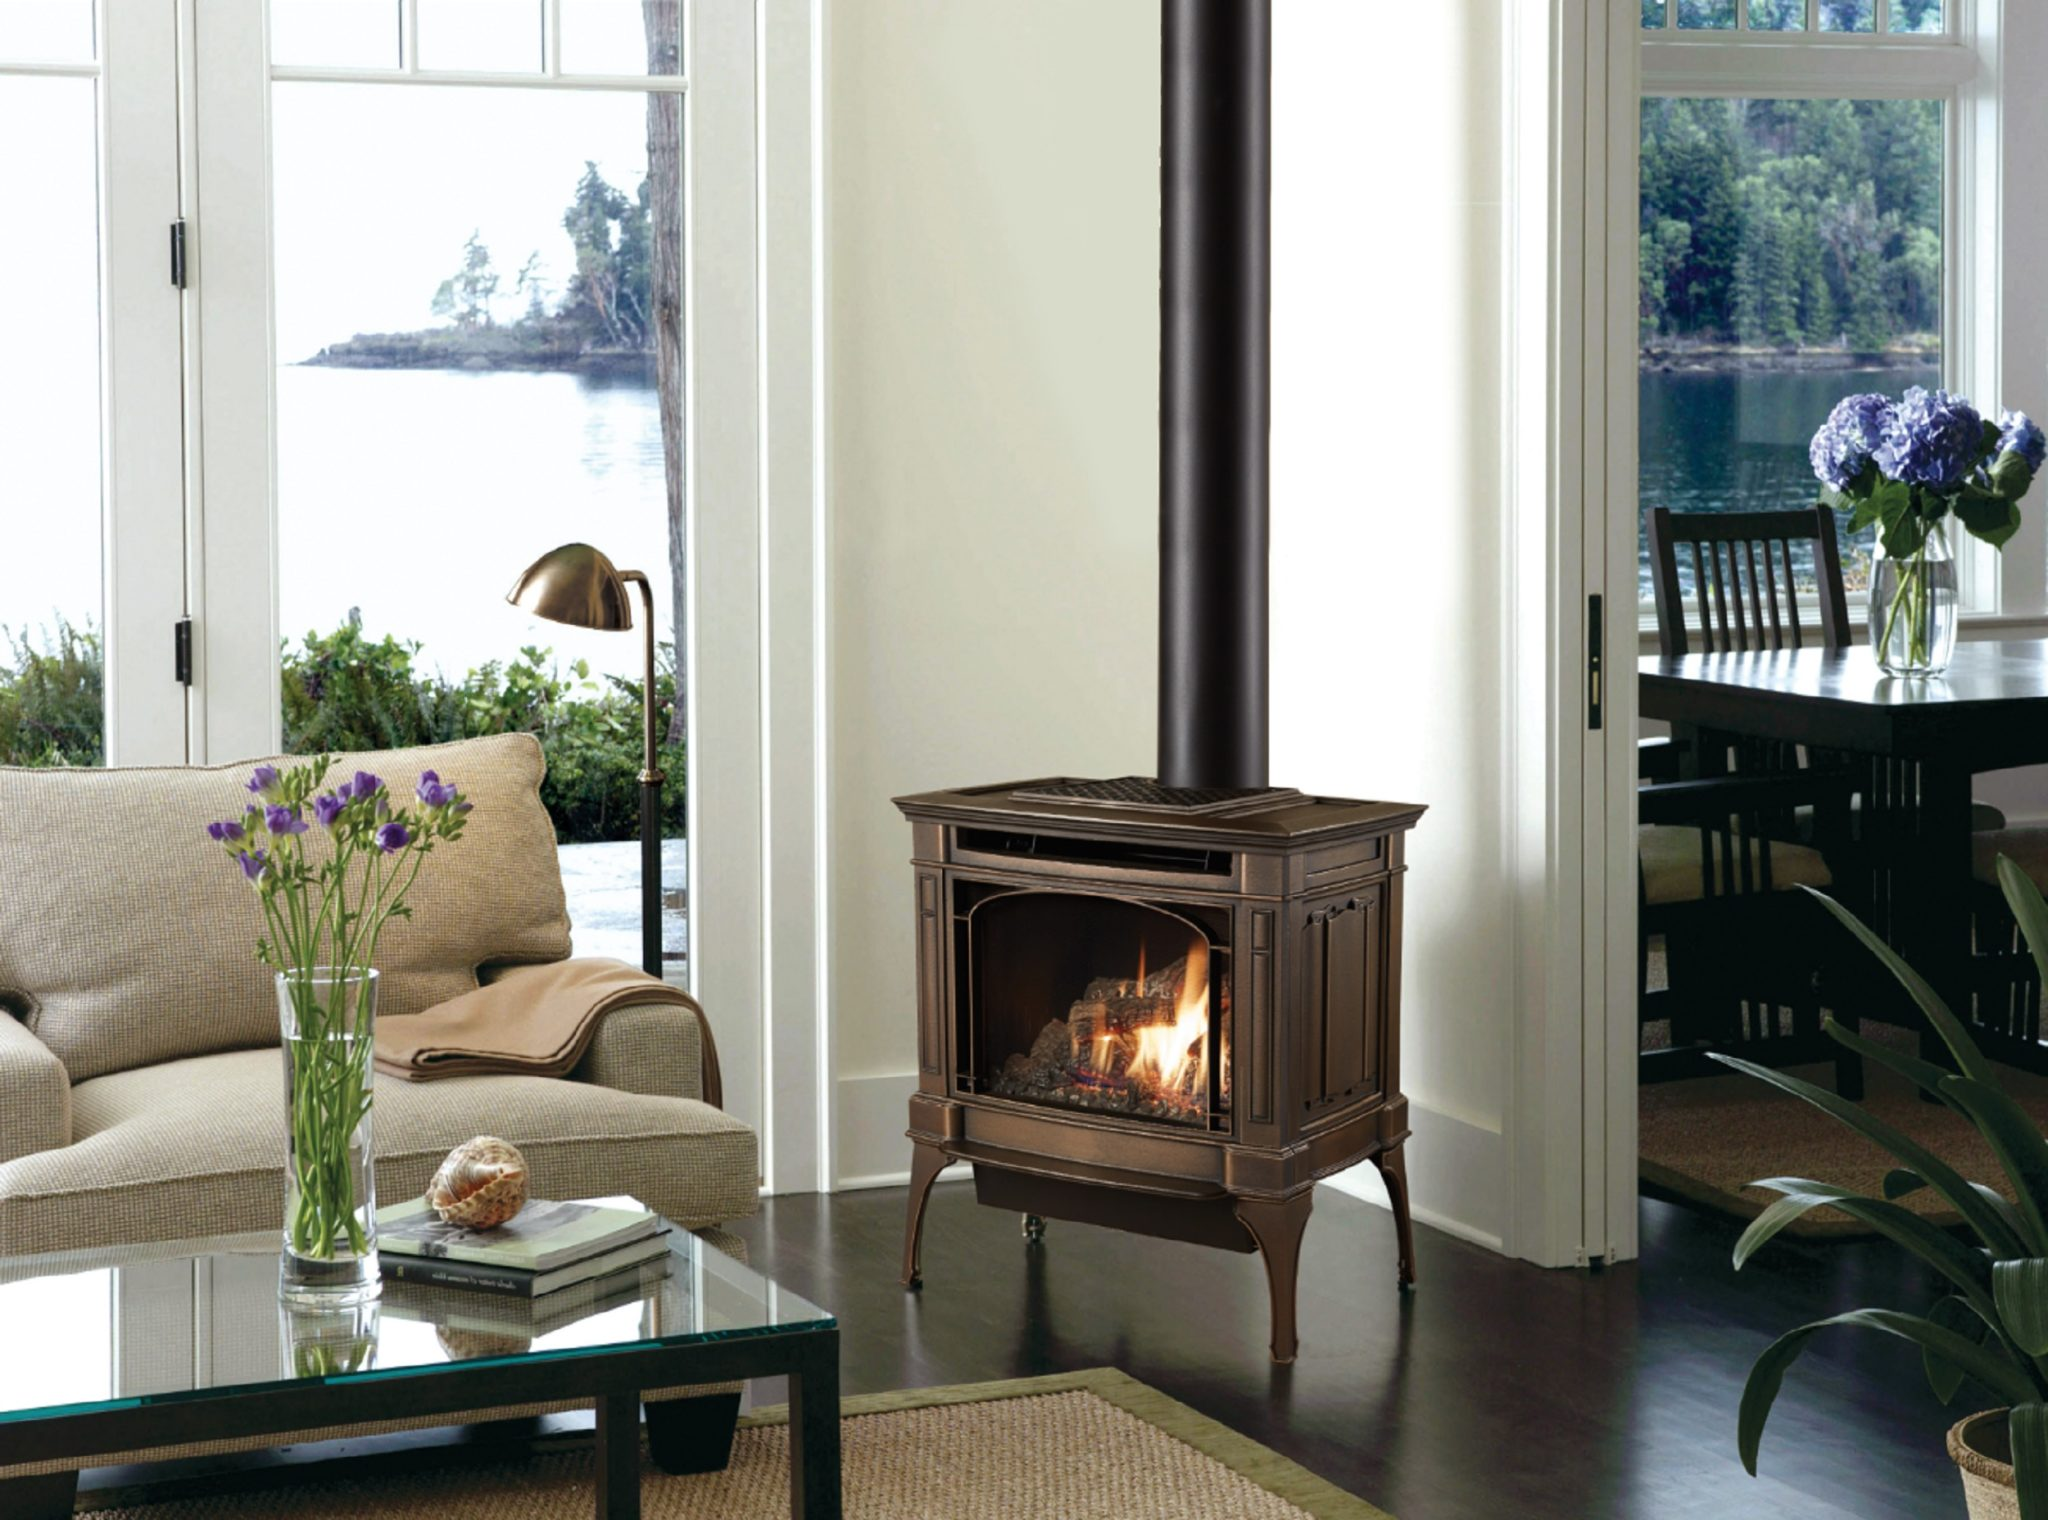 heatilator talking gas fireplace image book sytem blower of beautiful with wood burning inserts fireplaces